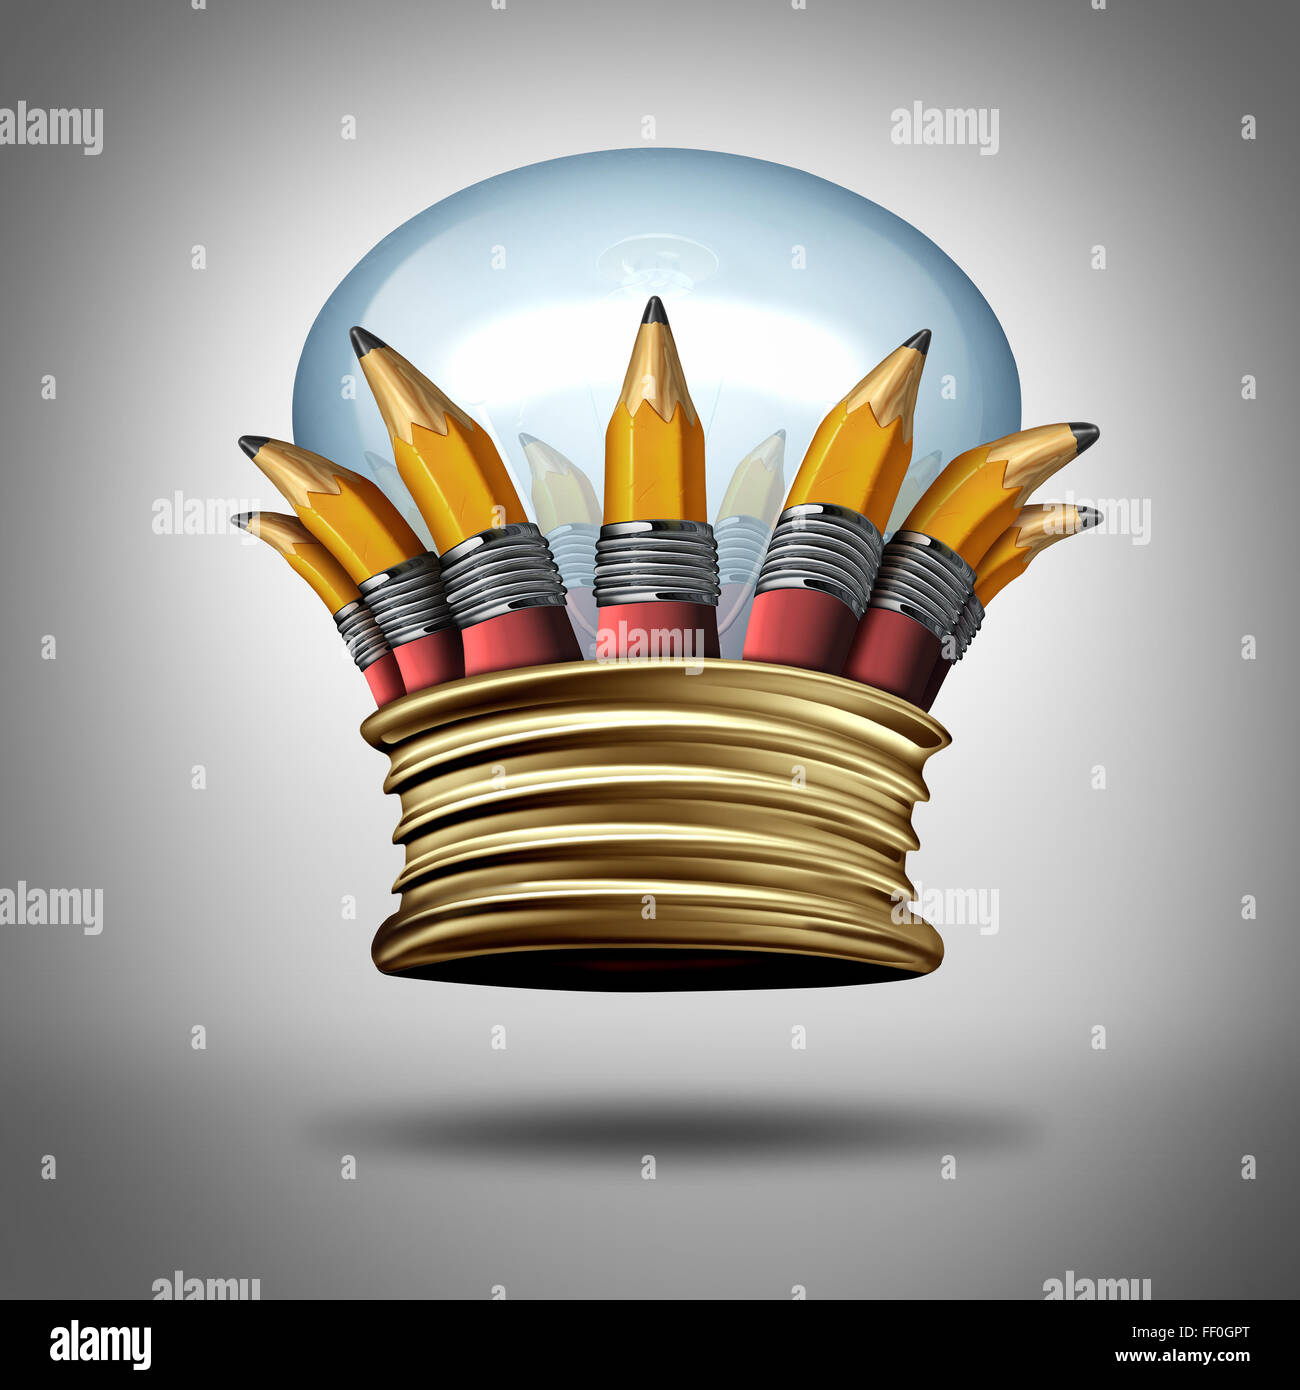 Innovation and ideas king crown as a group of pencils and a lightbulb or light bulb shaped as a royal crest as a - Stock Image